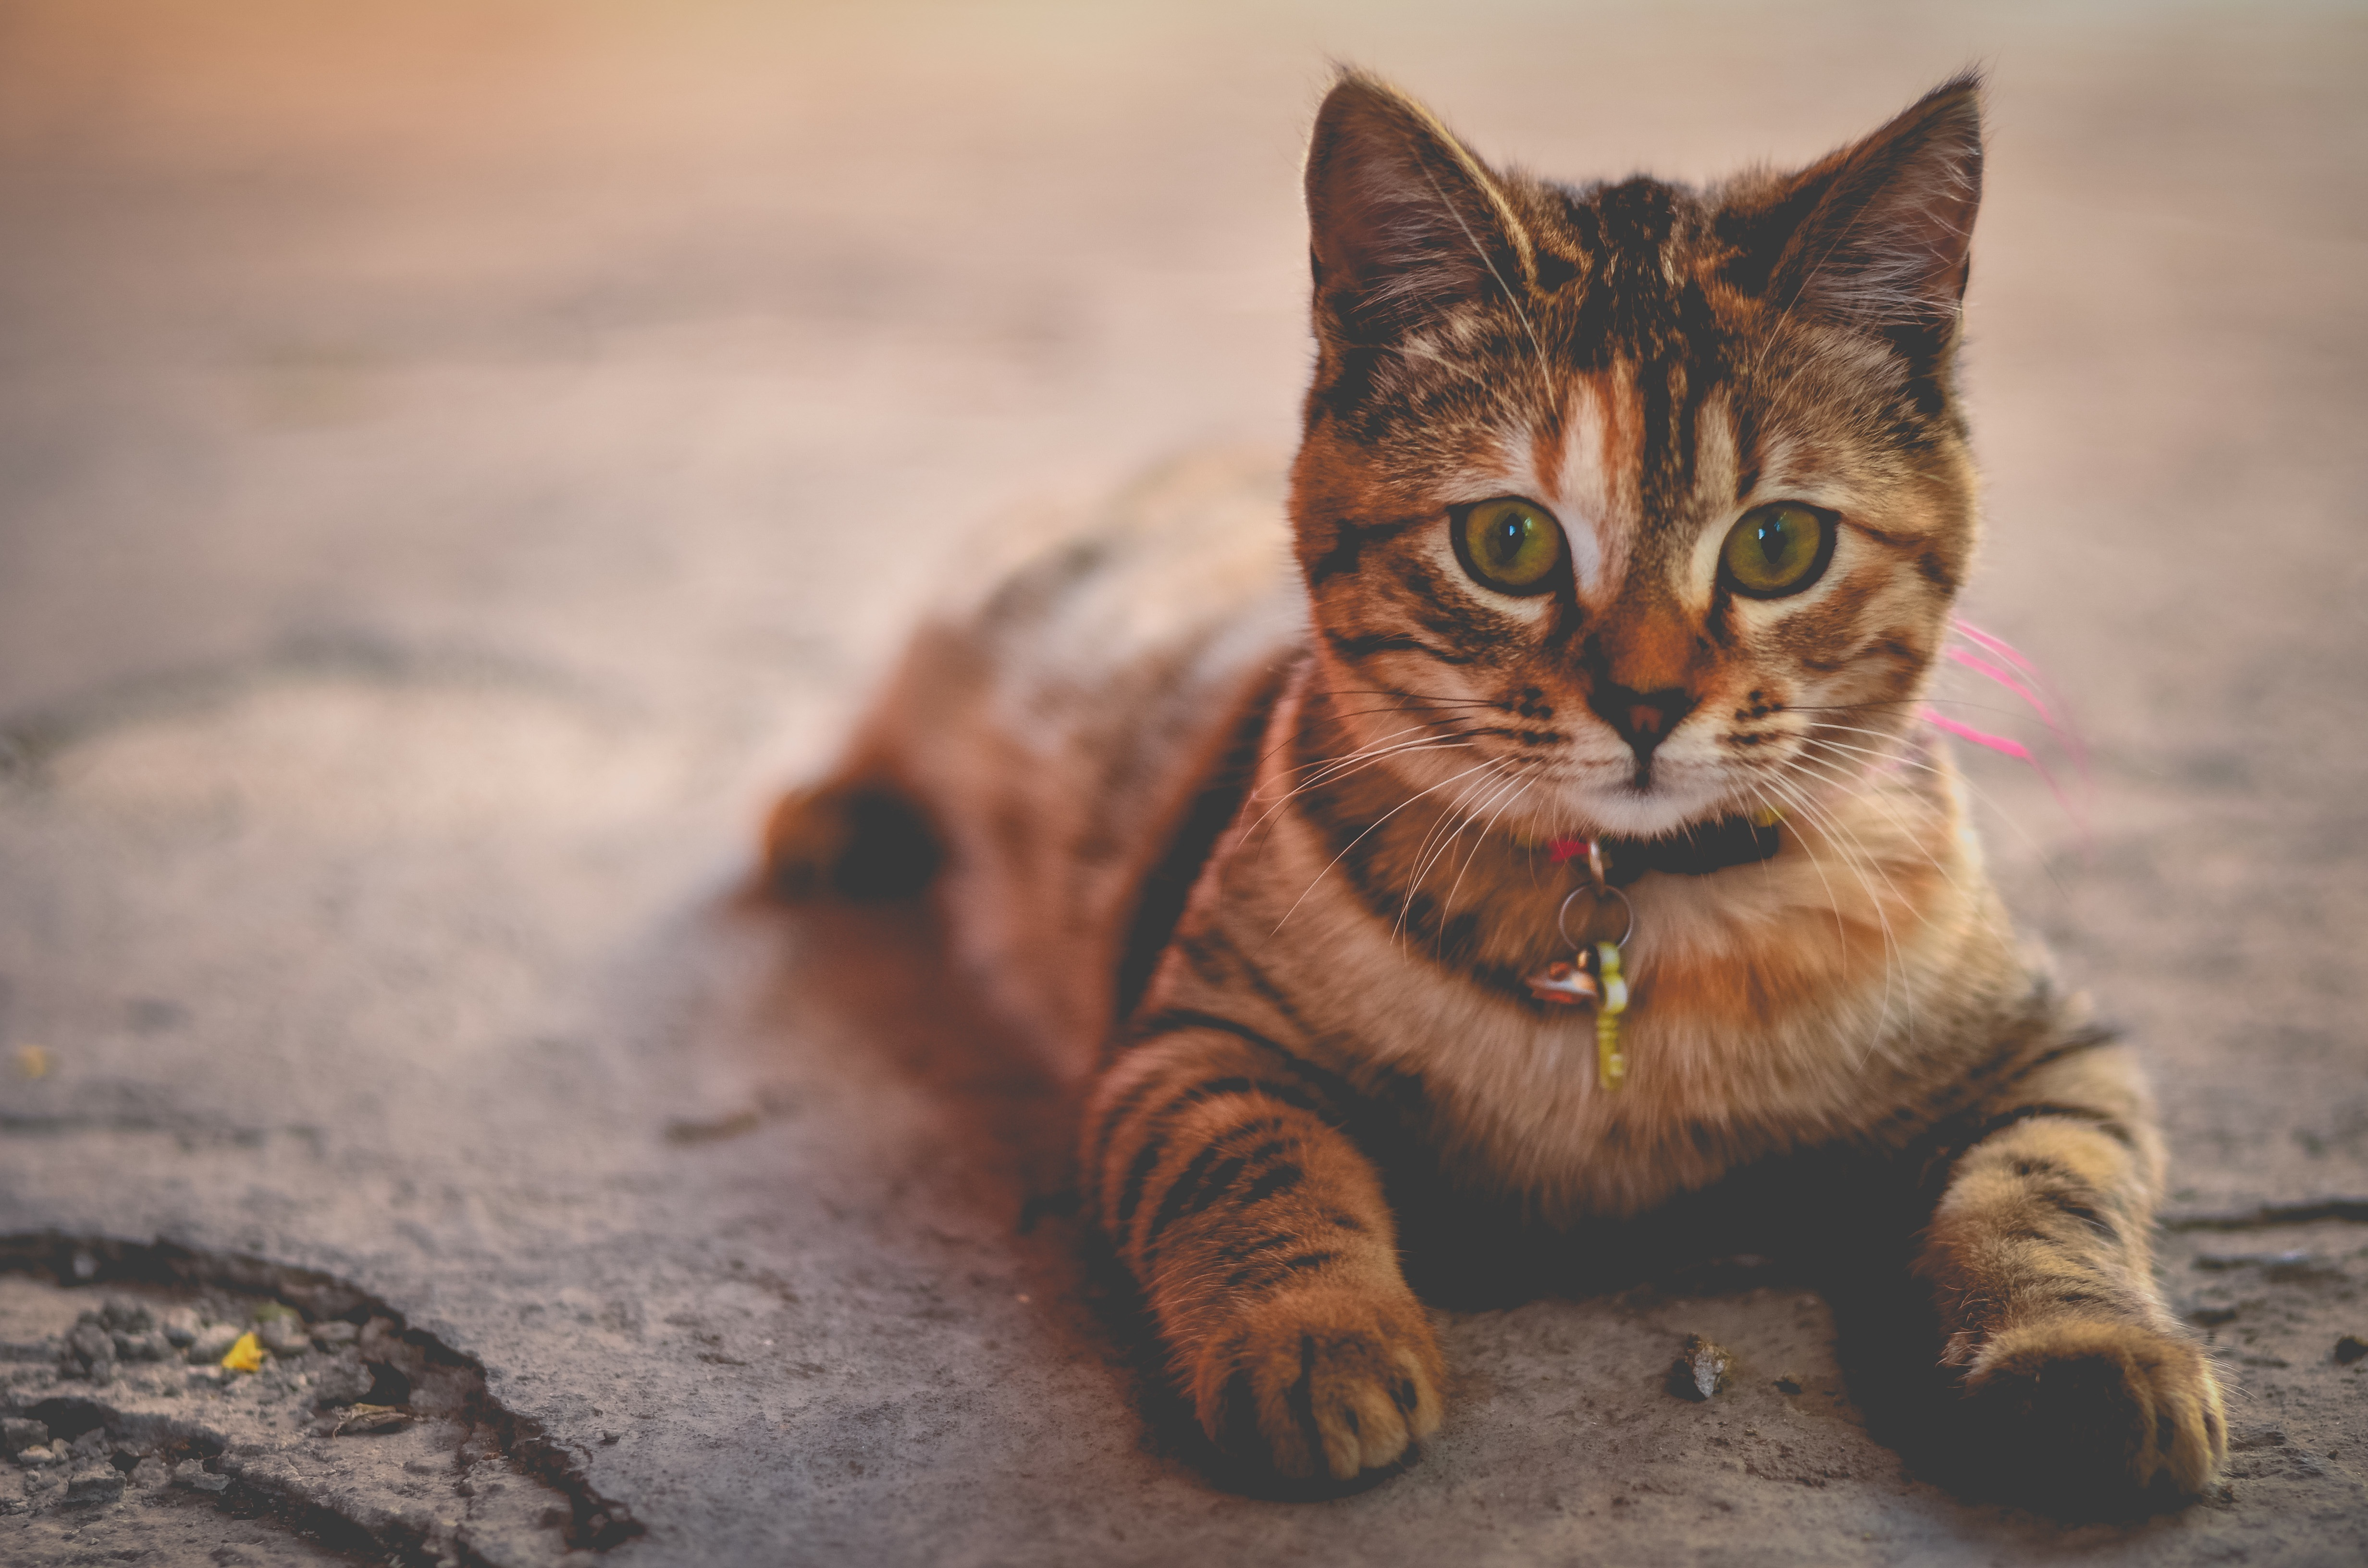 136839 download wallpaper Animals, Cat, Lies, Collar, Home, Domestic screensavers and pictures for free